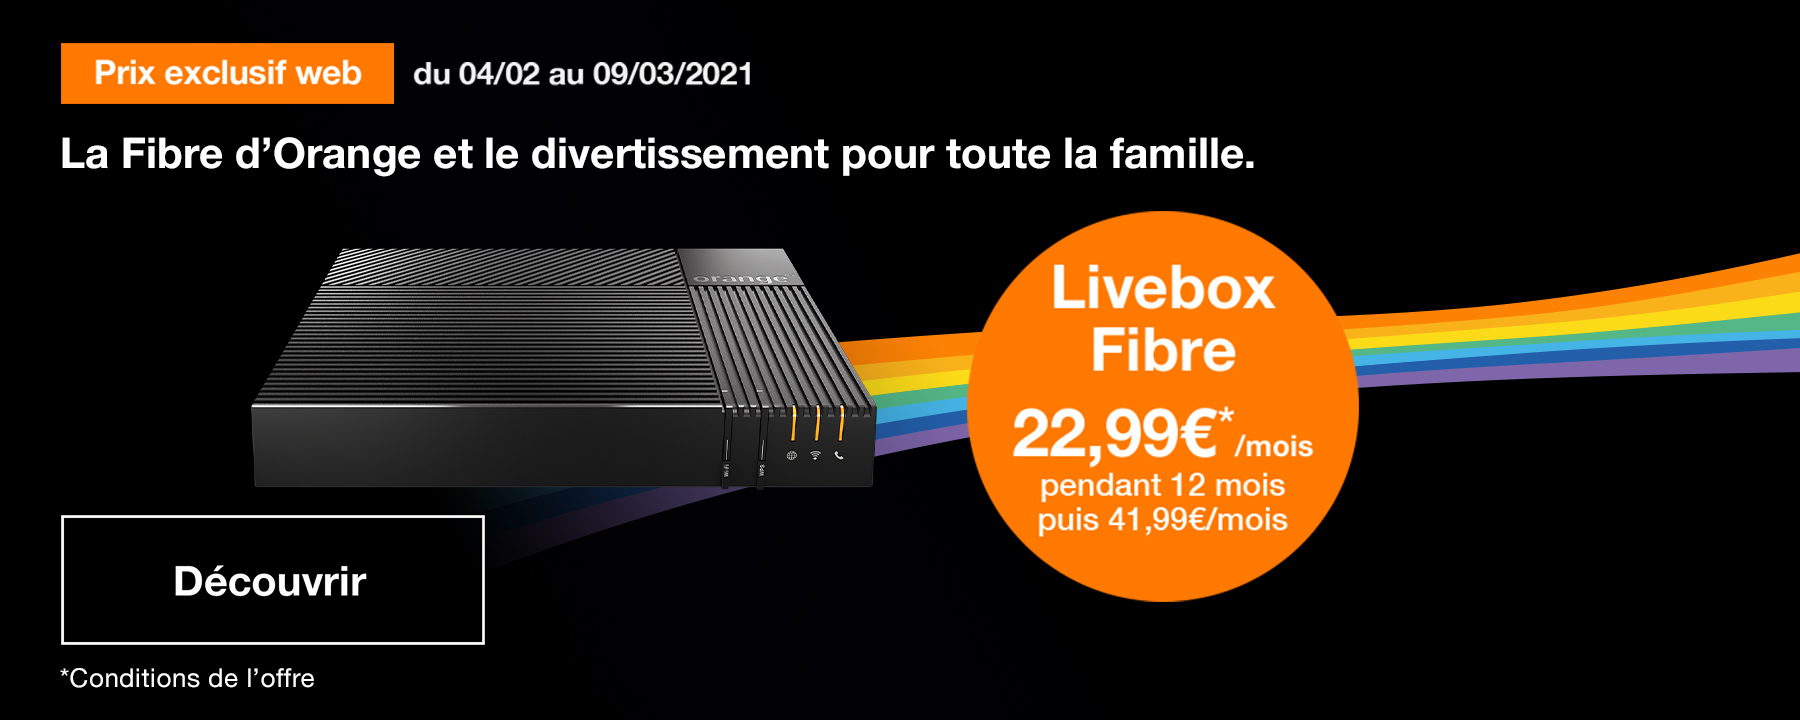 Prix exclusif web Livebox Fibre